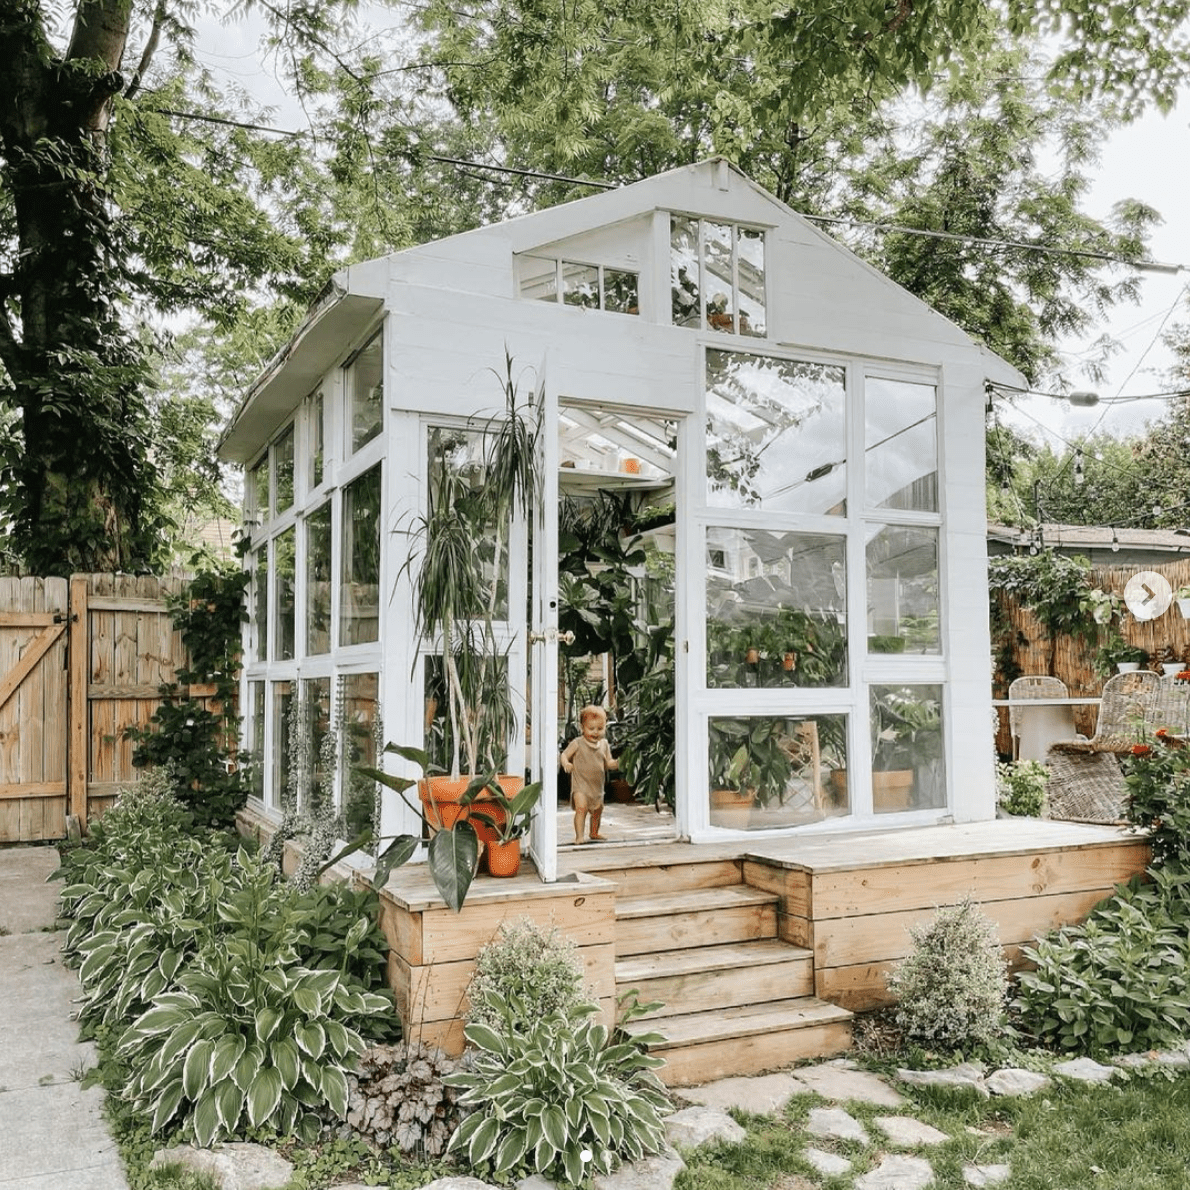 Beautiful lush greenhouse surrounded by hosta plants.